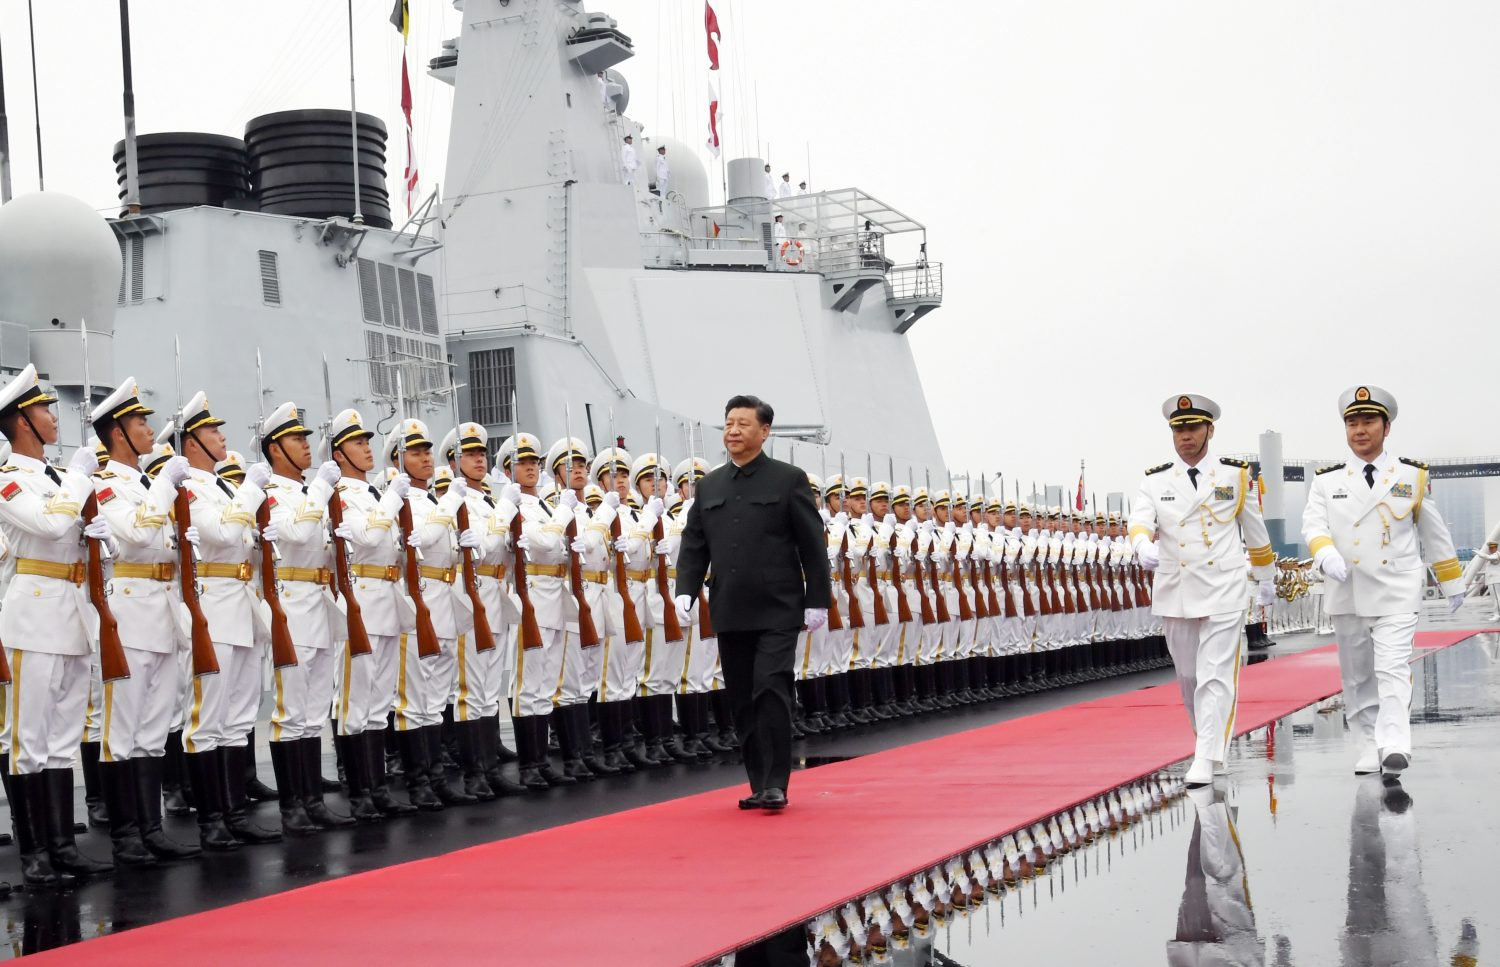 Chinese President Xi Jinping reviews the honor guards of the Chinese People's Liberation (PLA) Navy before boarding the destroyer Xining for the naval parade celebrating the 70th founding anniversary of the Chinese People's Liberation Army (PLA) Navy in Qingdao, Shandong province, China April 23, 2019. Xinhua via REUTERS